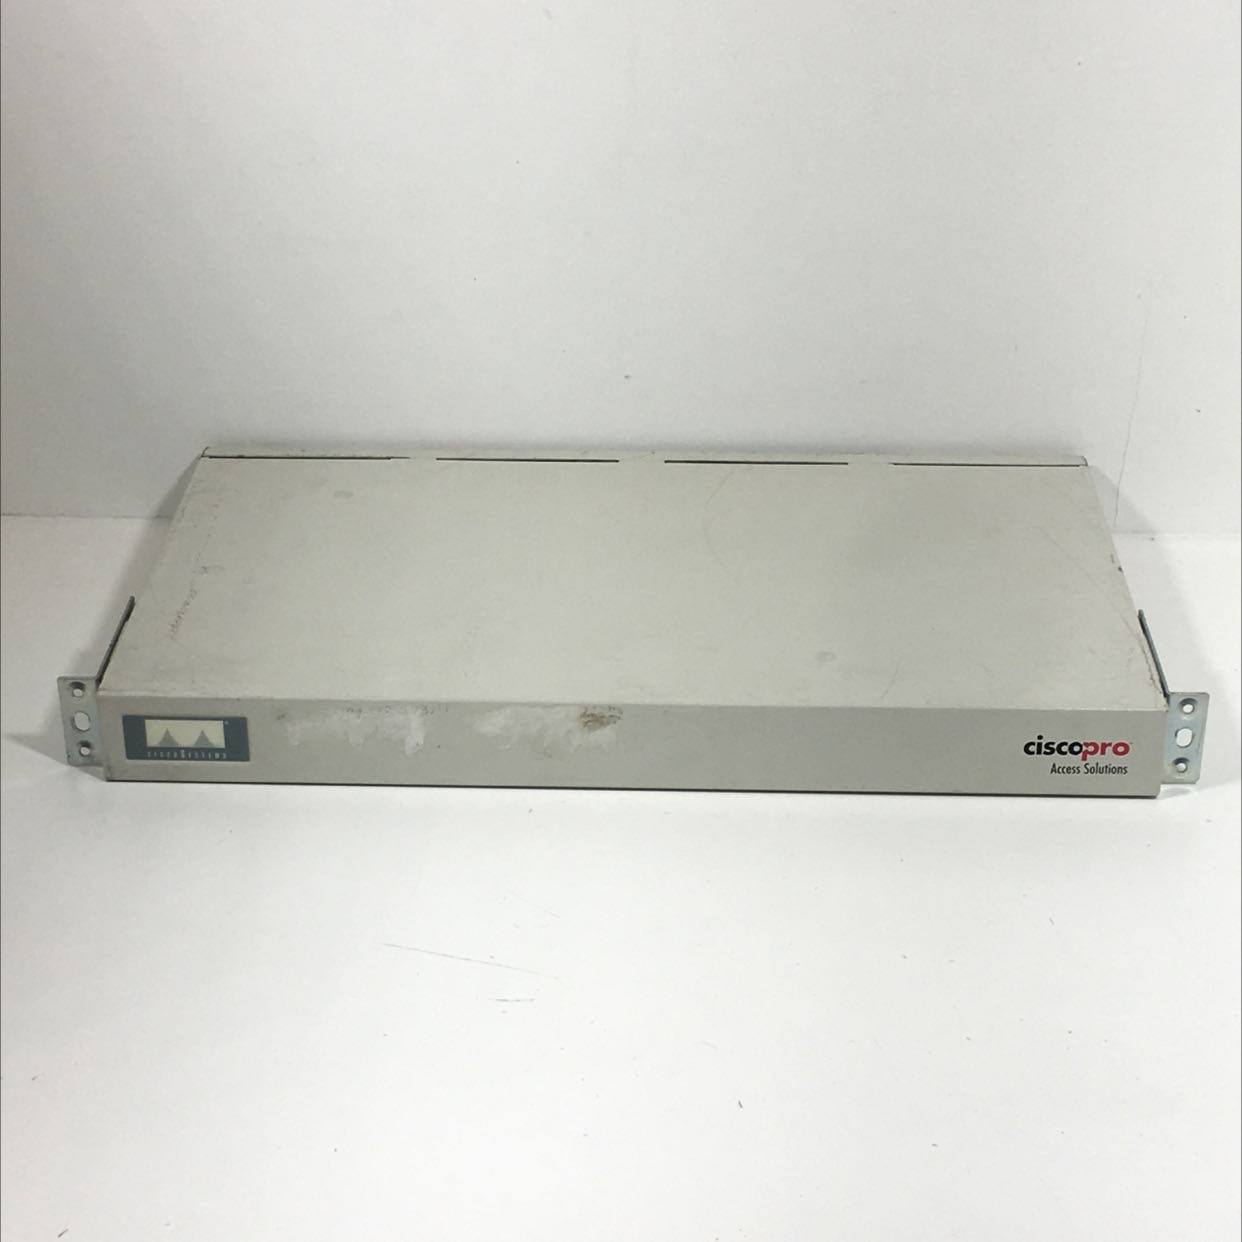 Cisco Systems 25686639 Wired Router Model CPA 2501